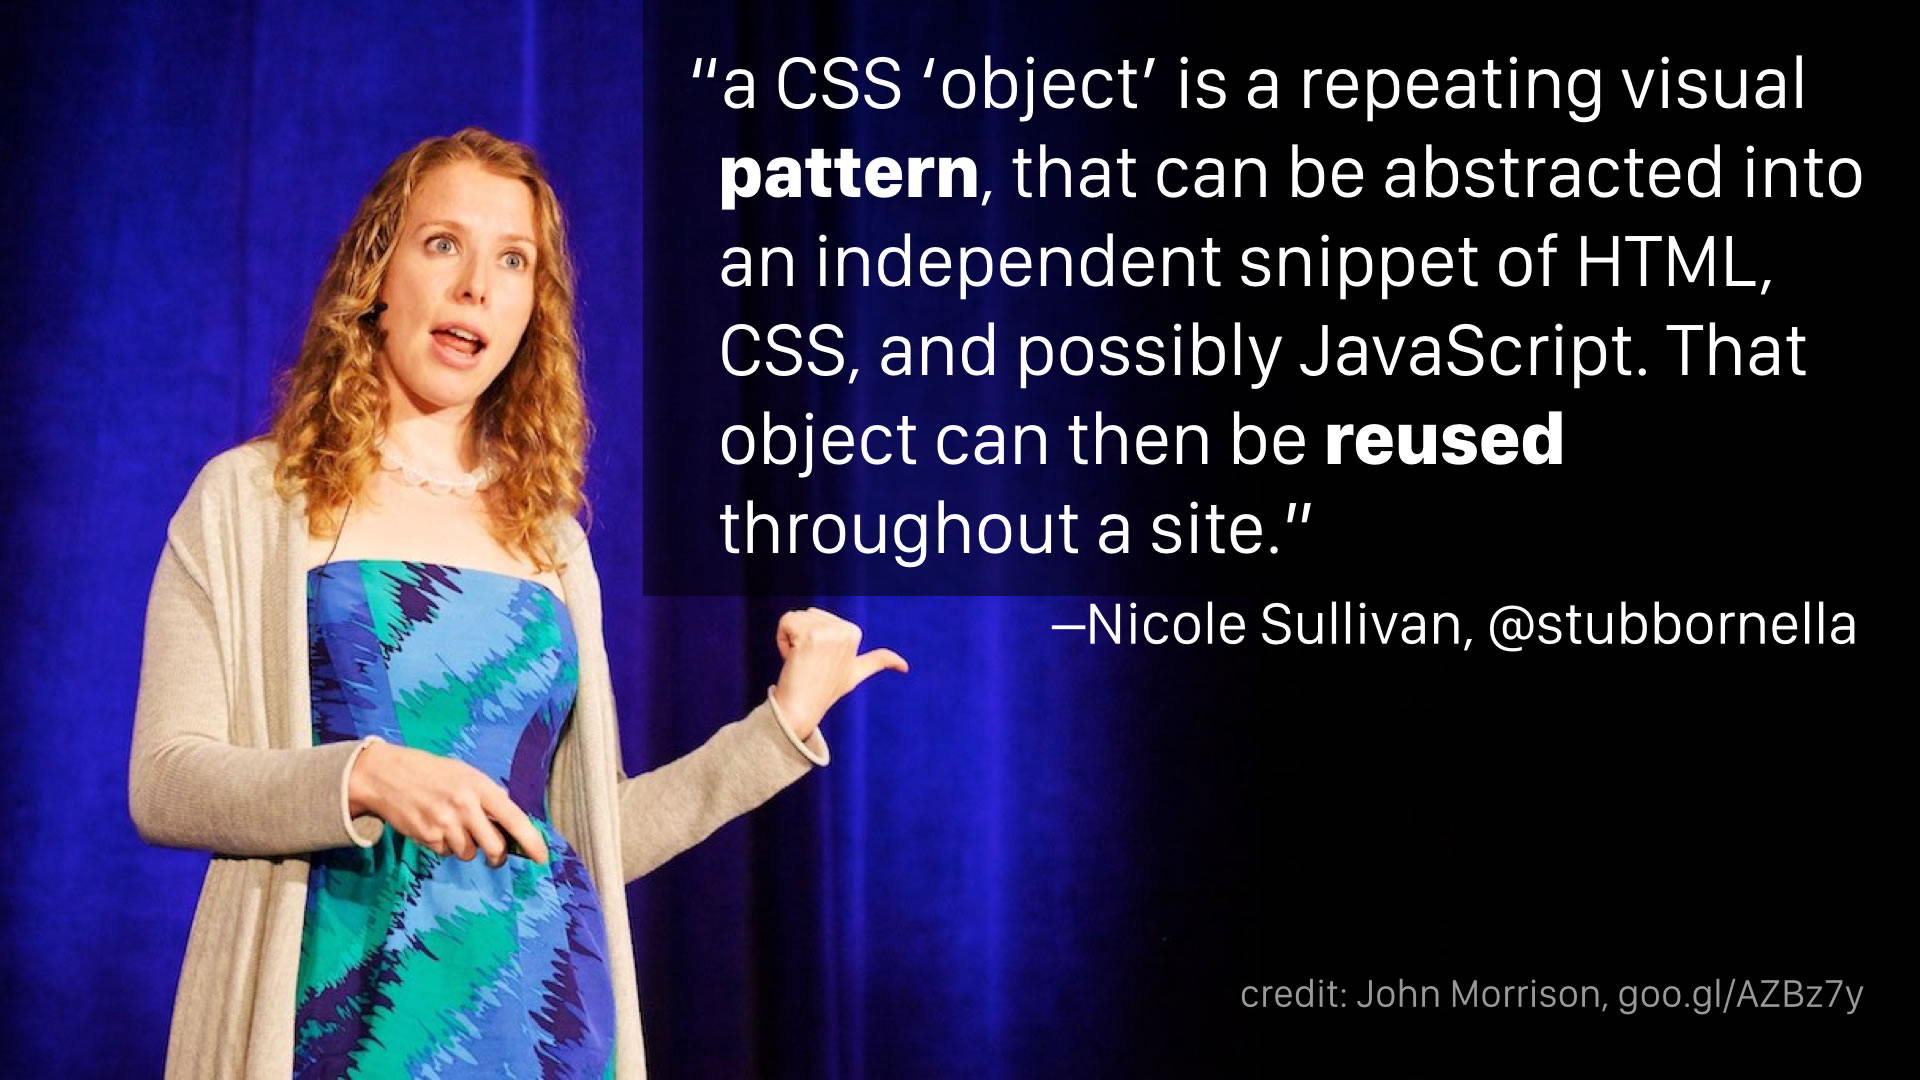 """a CSS 'object' is a repeating visual pattern, that can be abstracted into an independent snippet of HTML, CSS, and possibly JavaScript. That object can then be reused throughout a site."" —Nicole Sullivan"